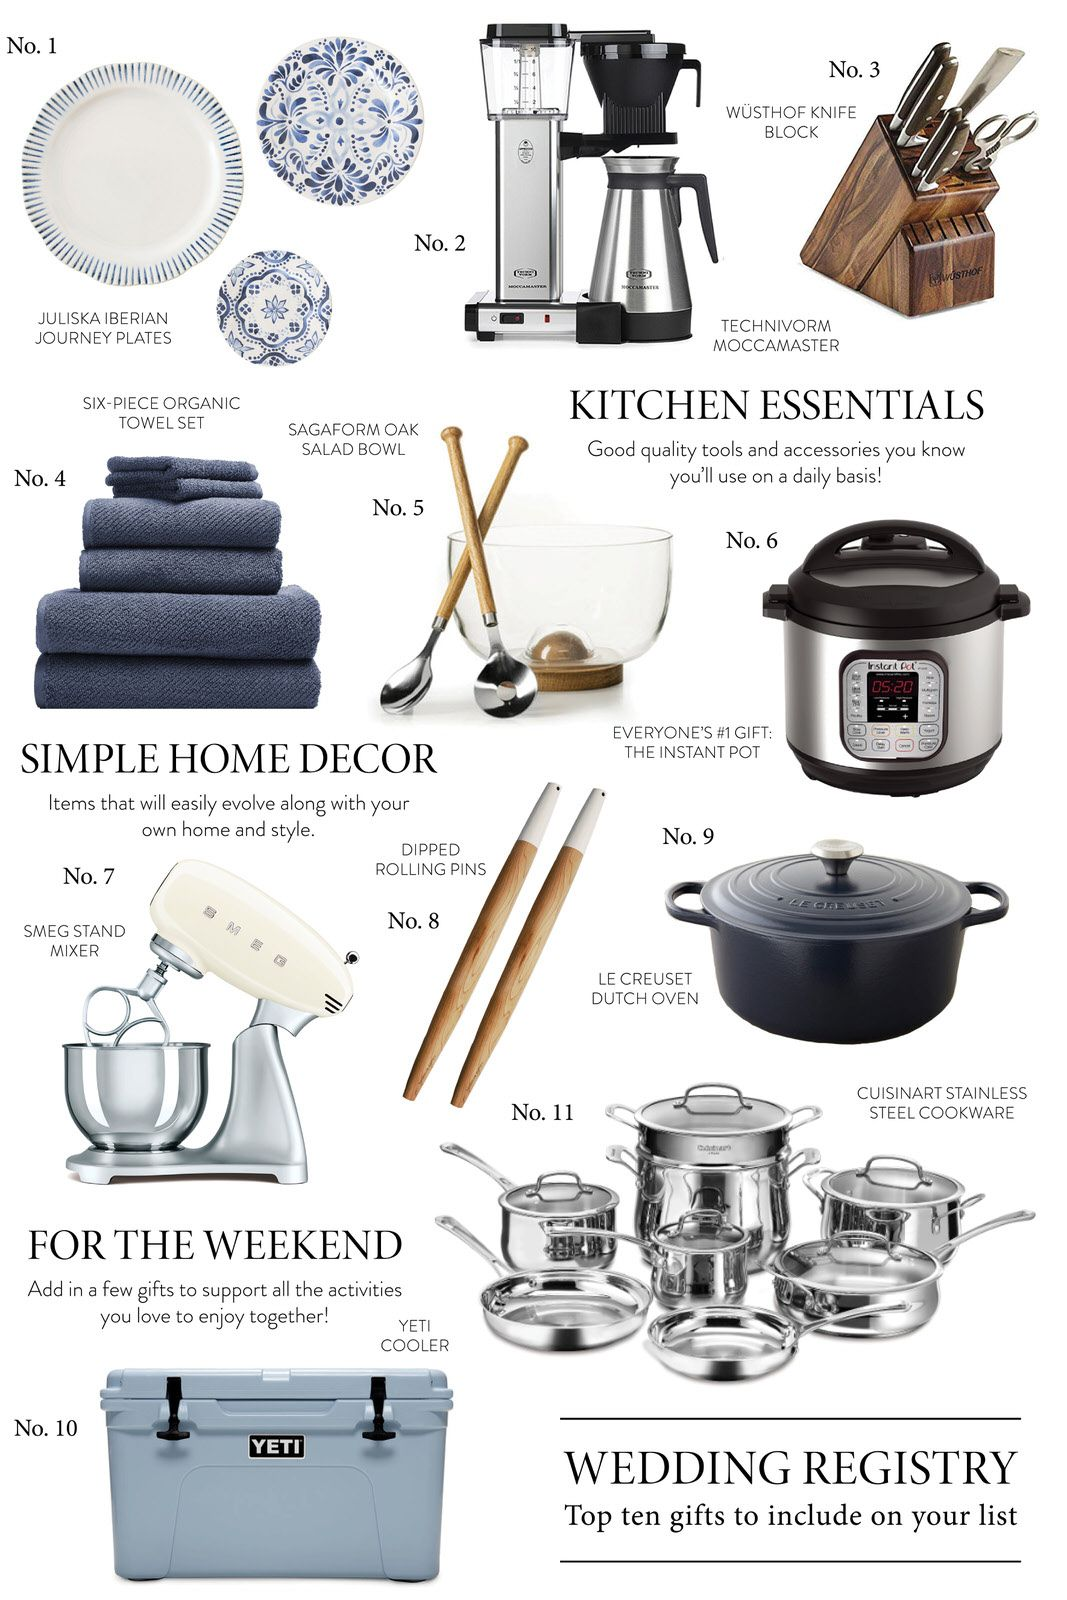 Top Ten Gifts to Include on Your Wedding Registry Hello